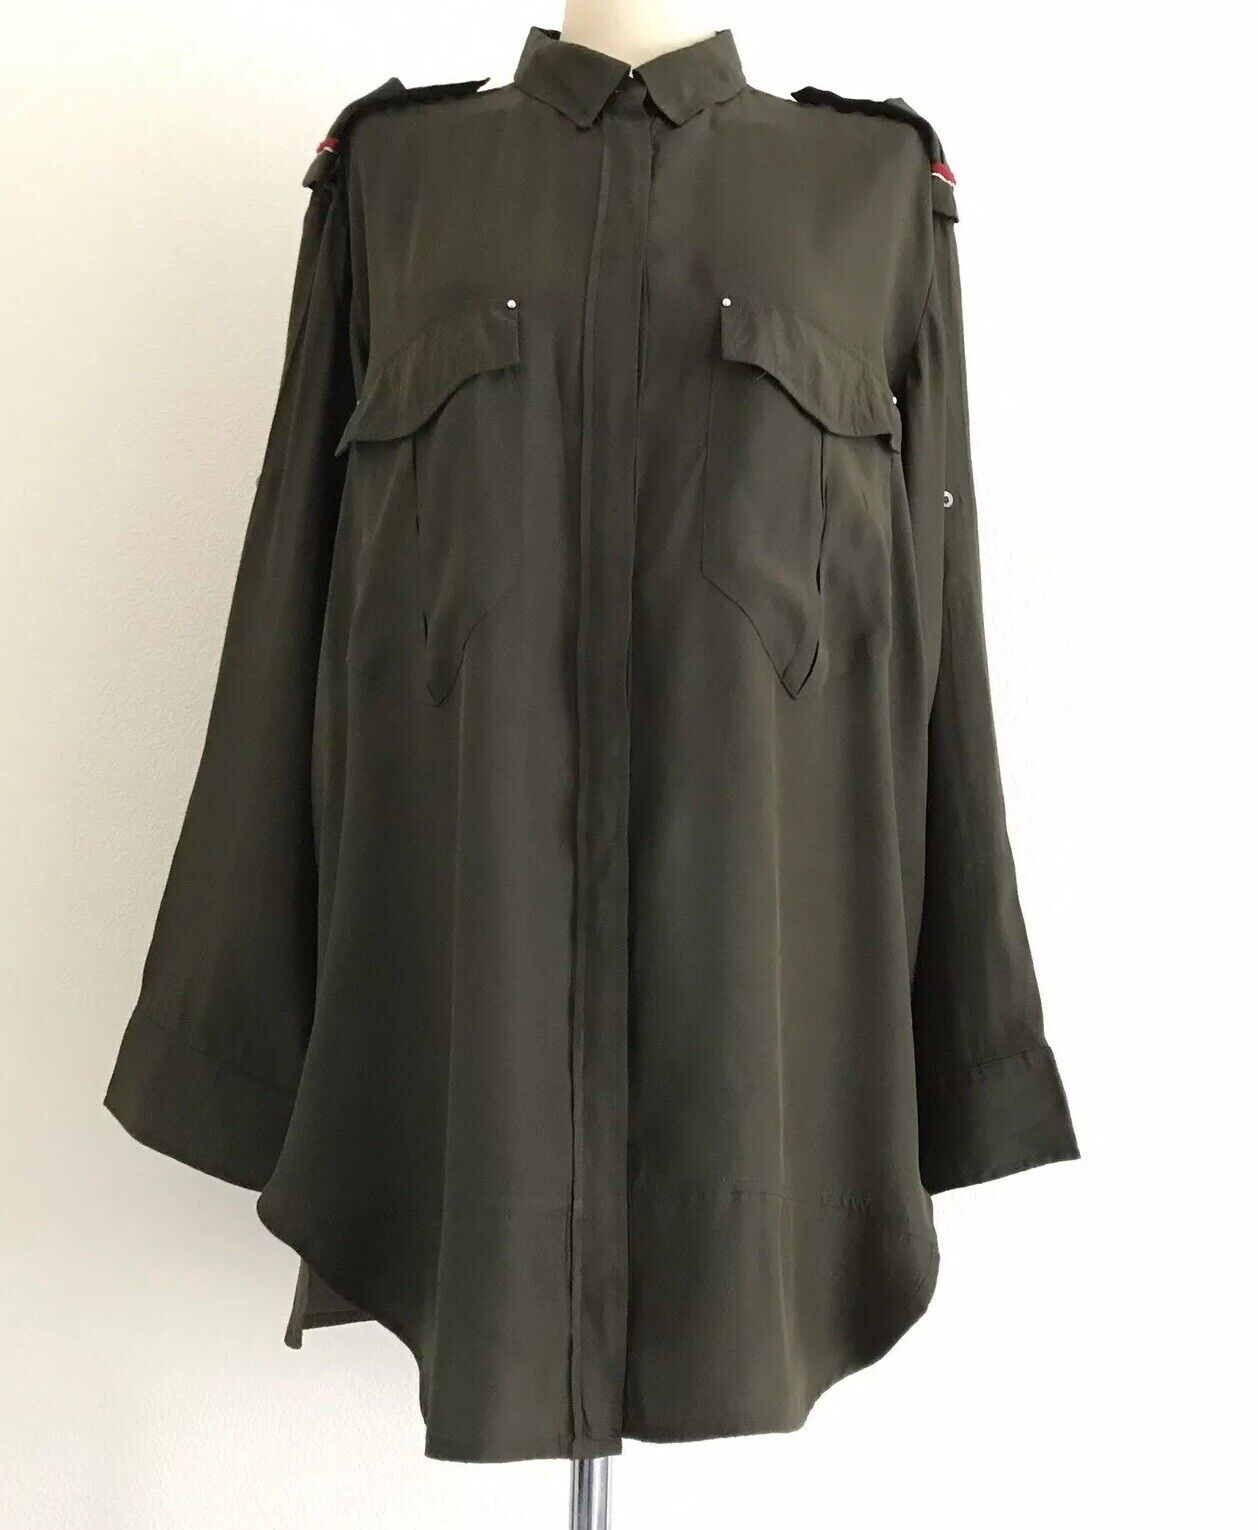 IRO Nastia Khaki Grün Military Silk Blouse Shirt Dress - Medium - Large Größe